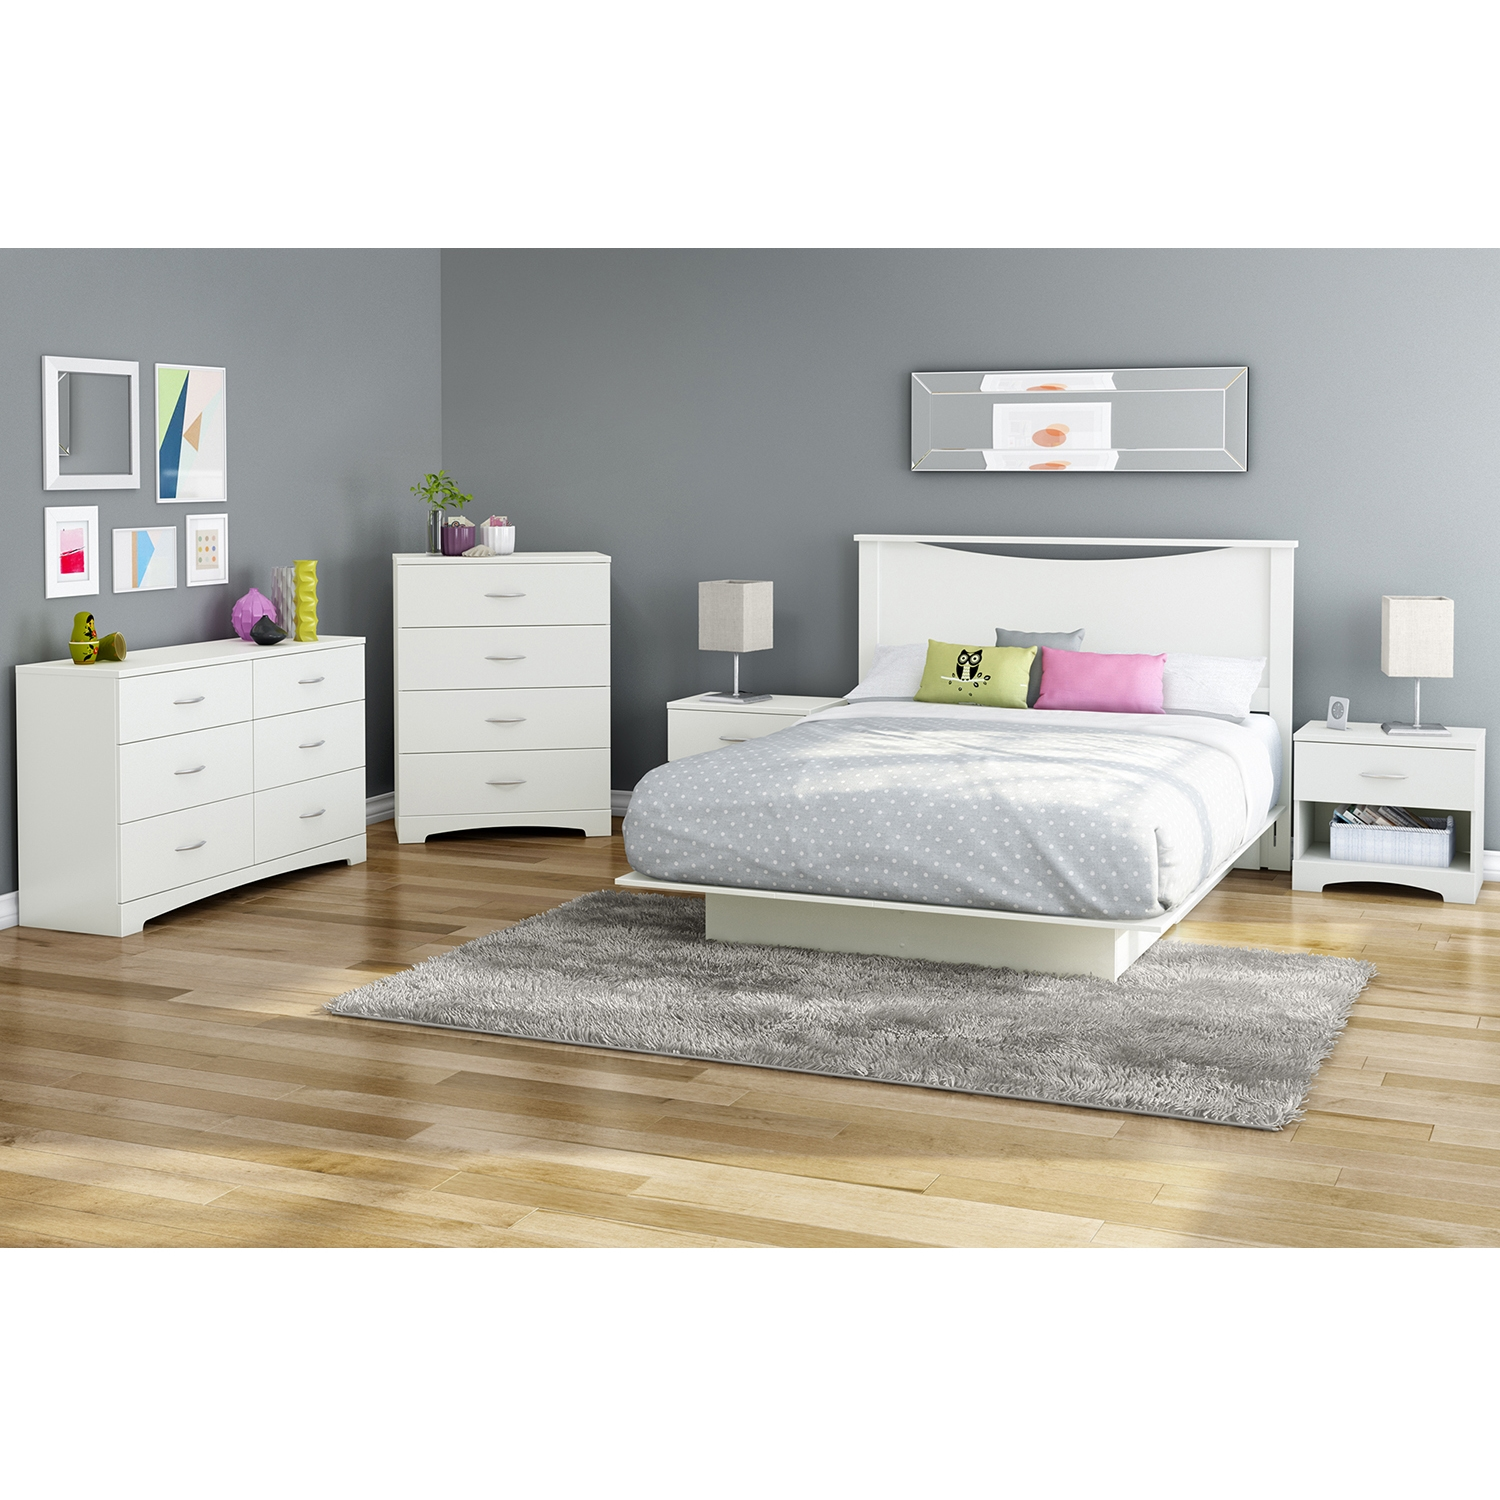 Step One Chest - 4 Drawers, Pure White - SS-10069